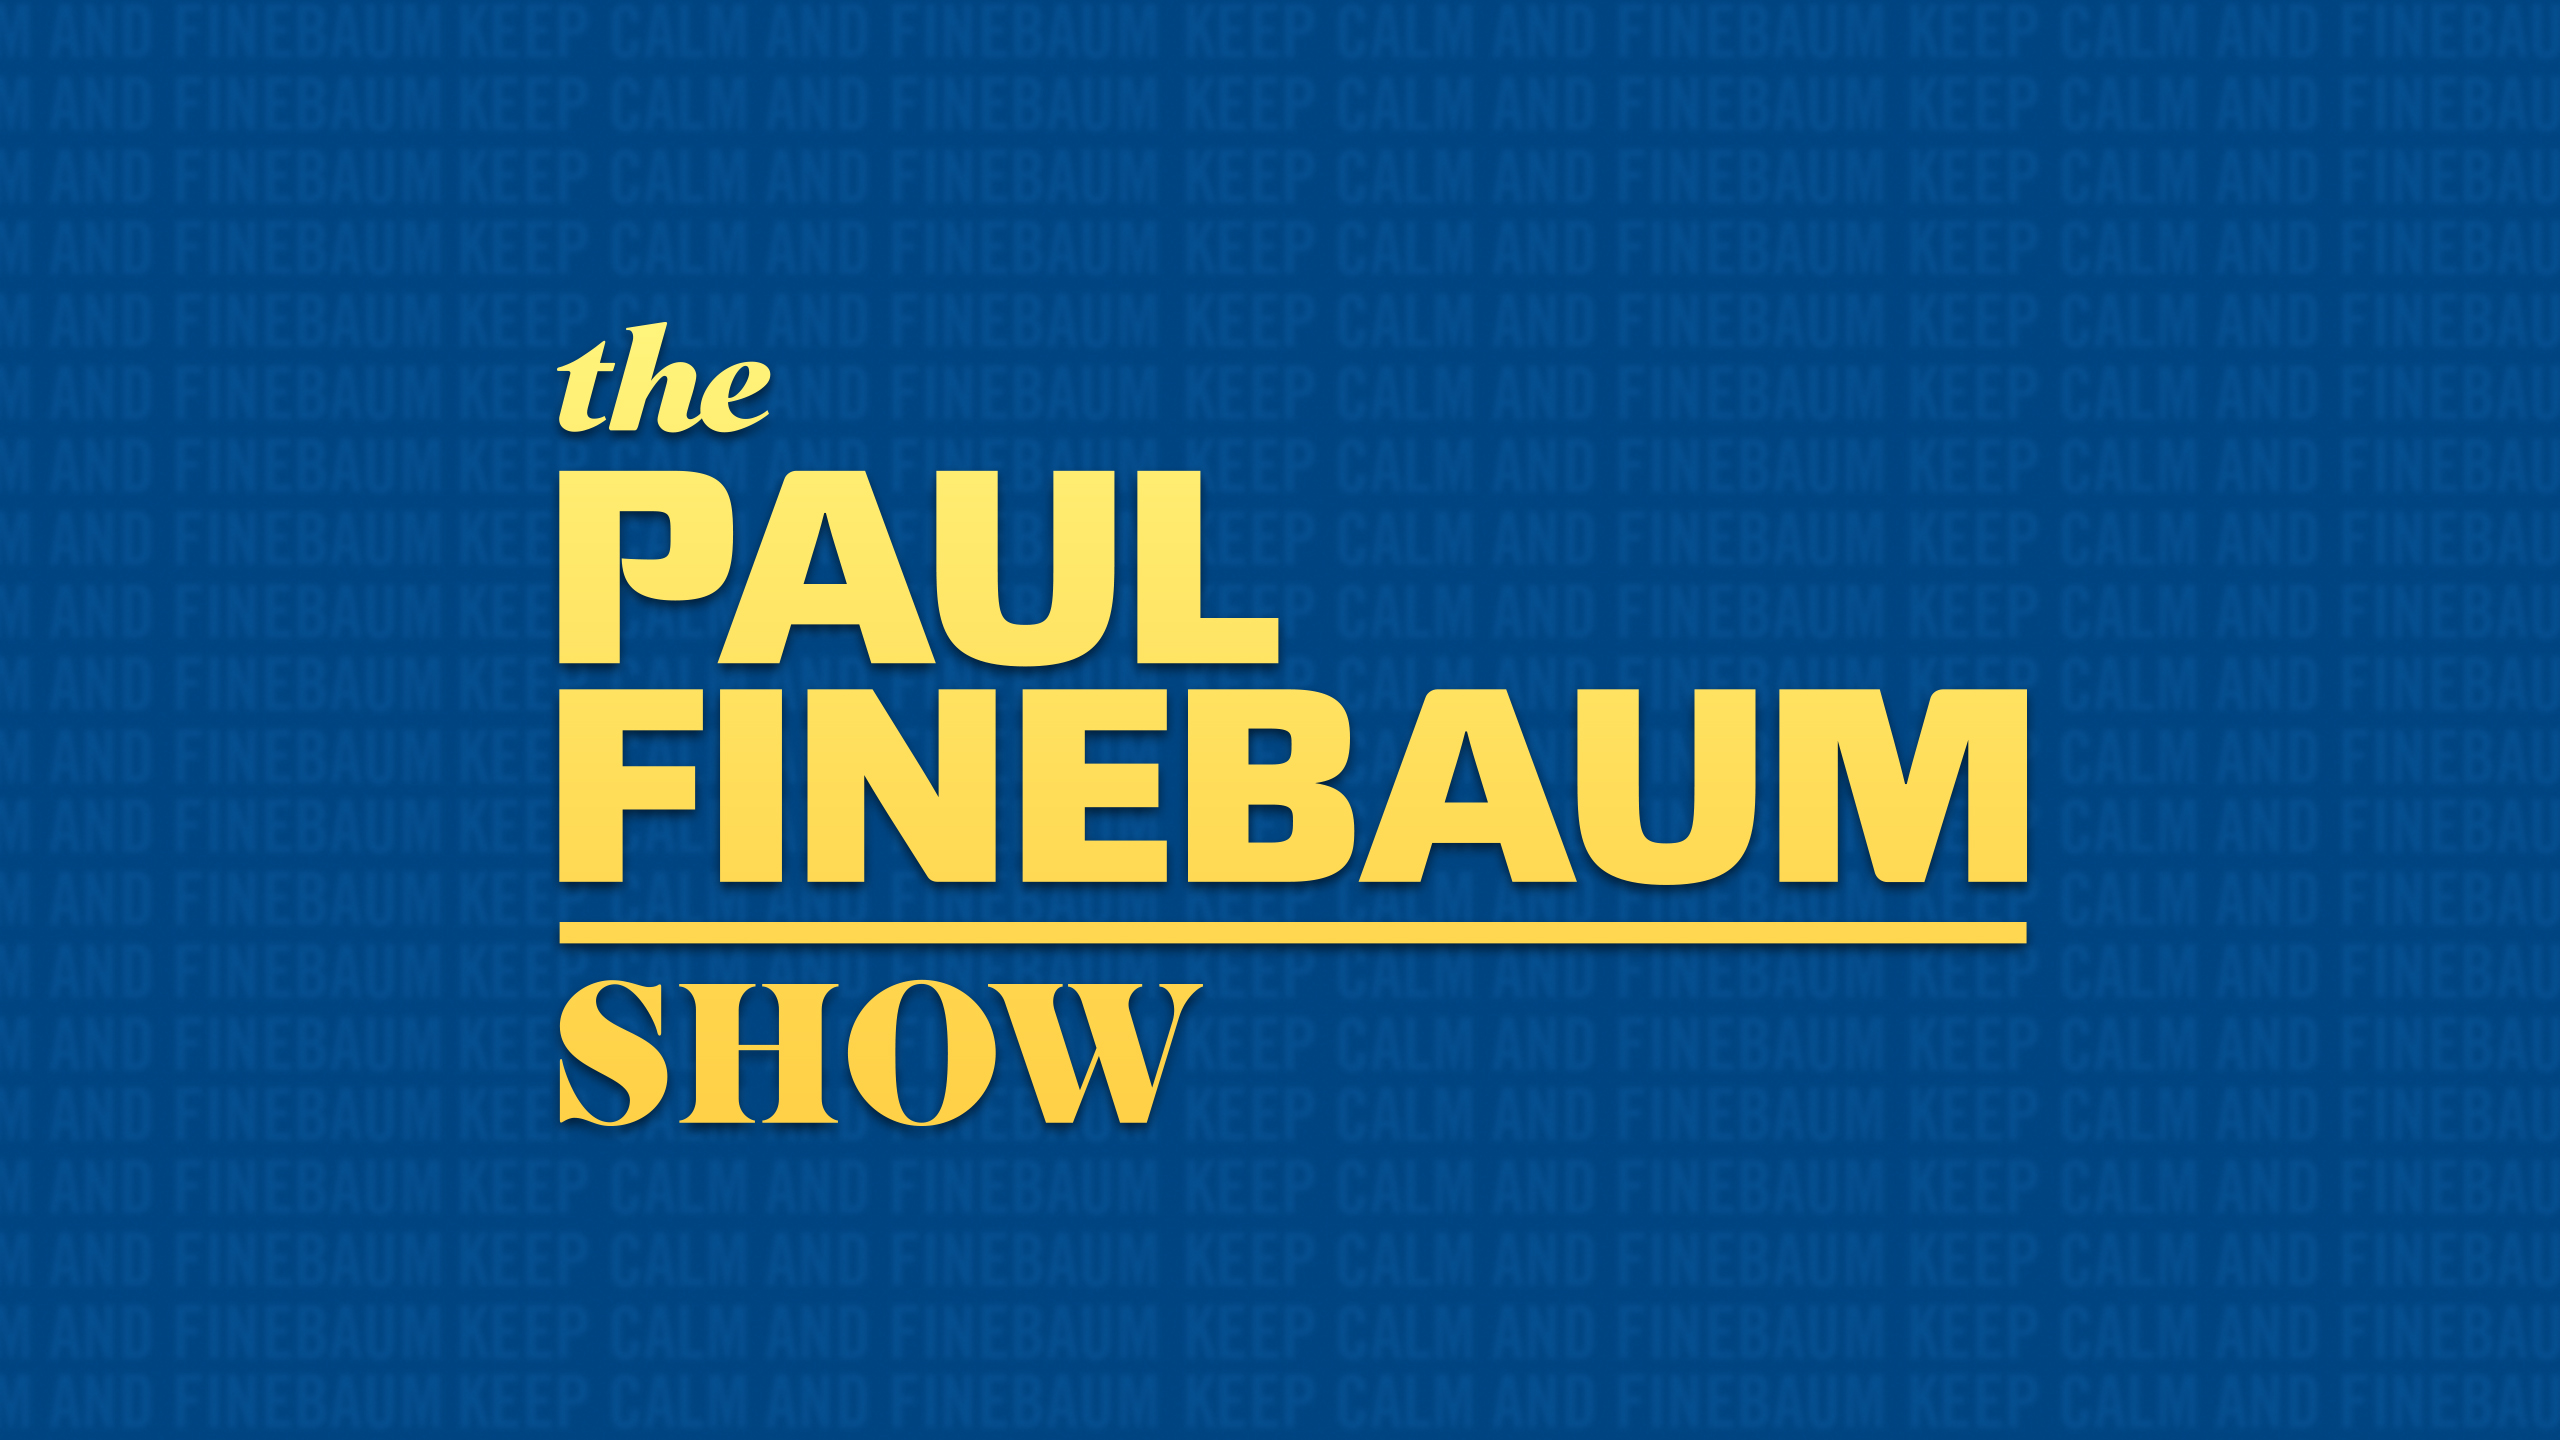 Mon, 11/12 - The Paul Finebaum Show Presented by Regions Bank